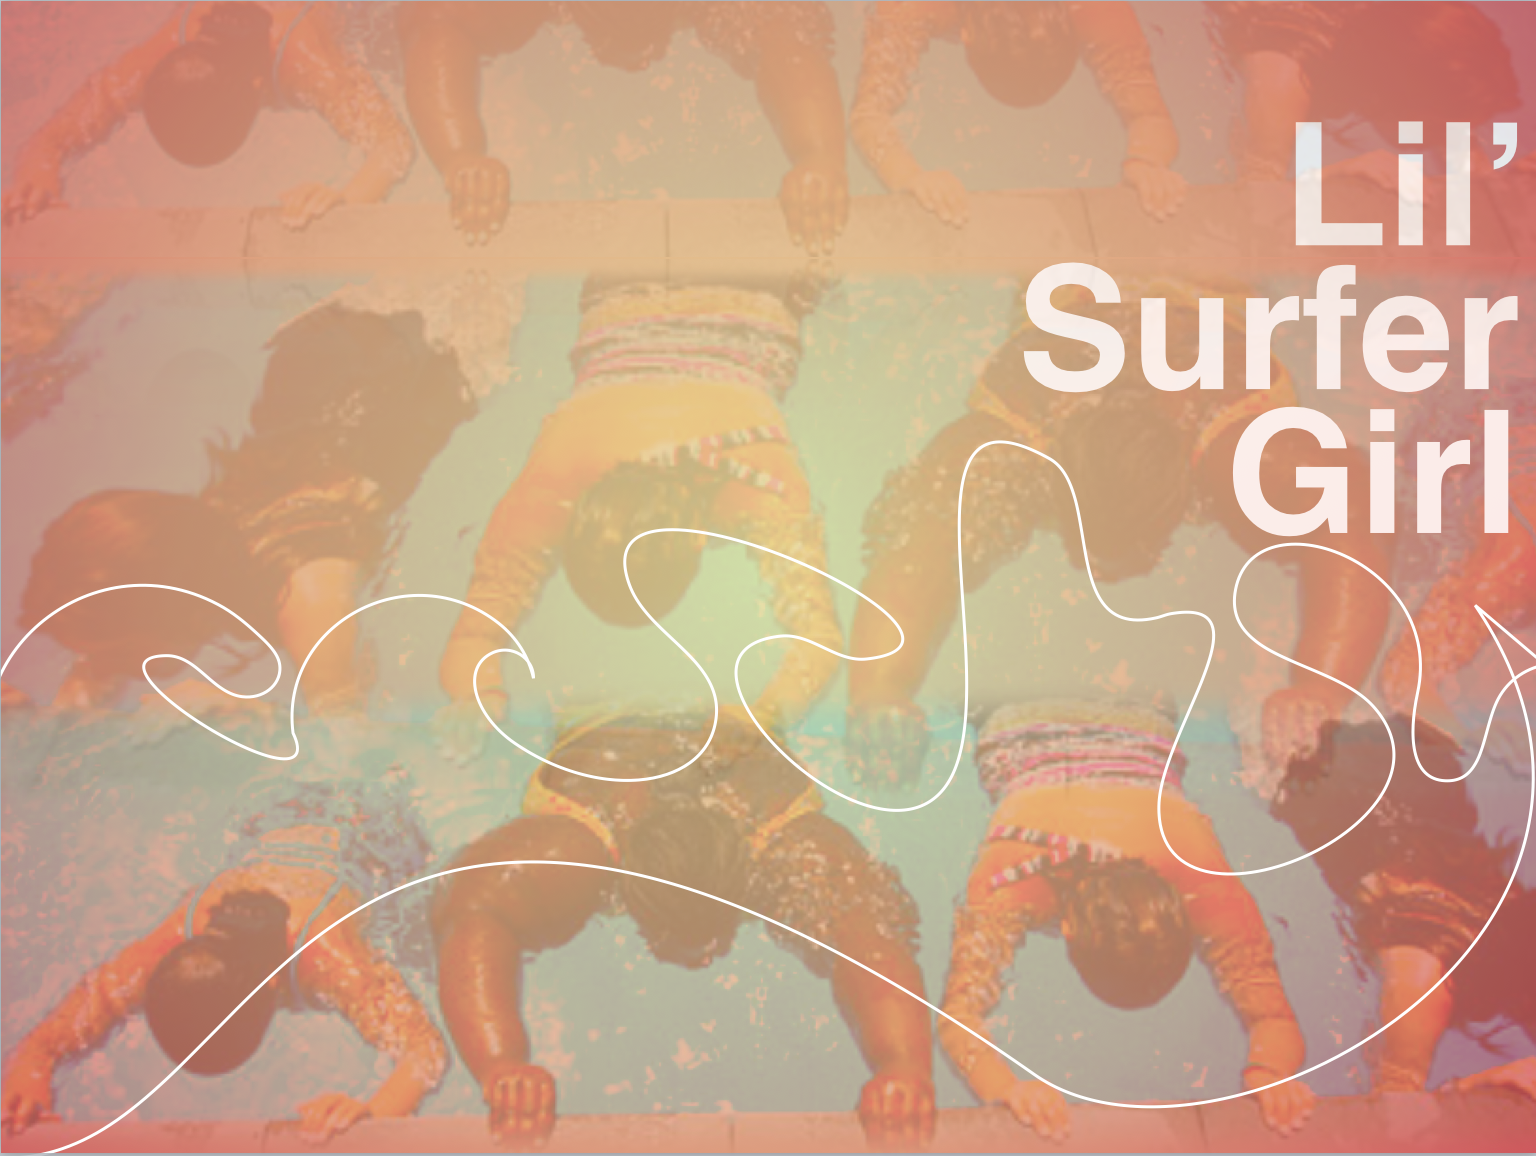 """Lil Surfer Girl is as funny as it is heartfelt, with a great premise, richly depicted characters, and a motor that takes us all the way to the end."" -Slamdance"